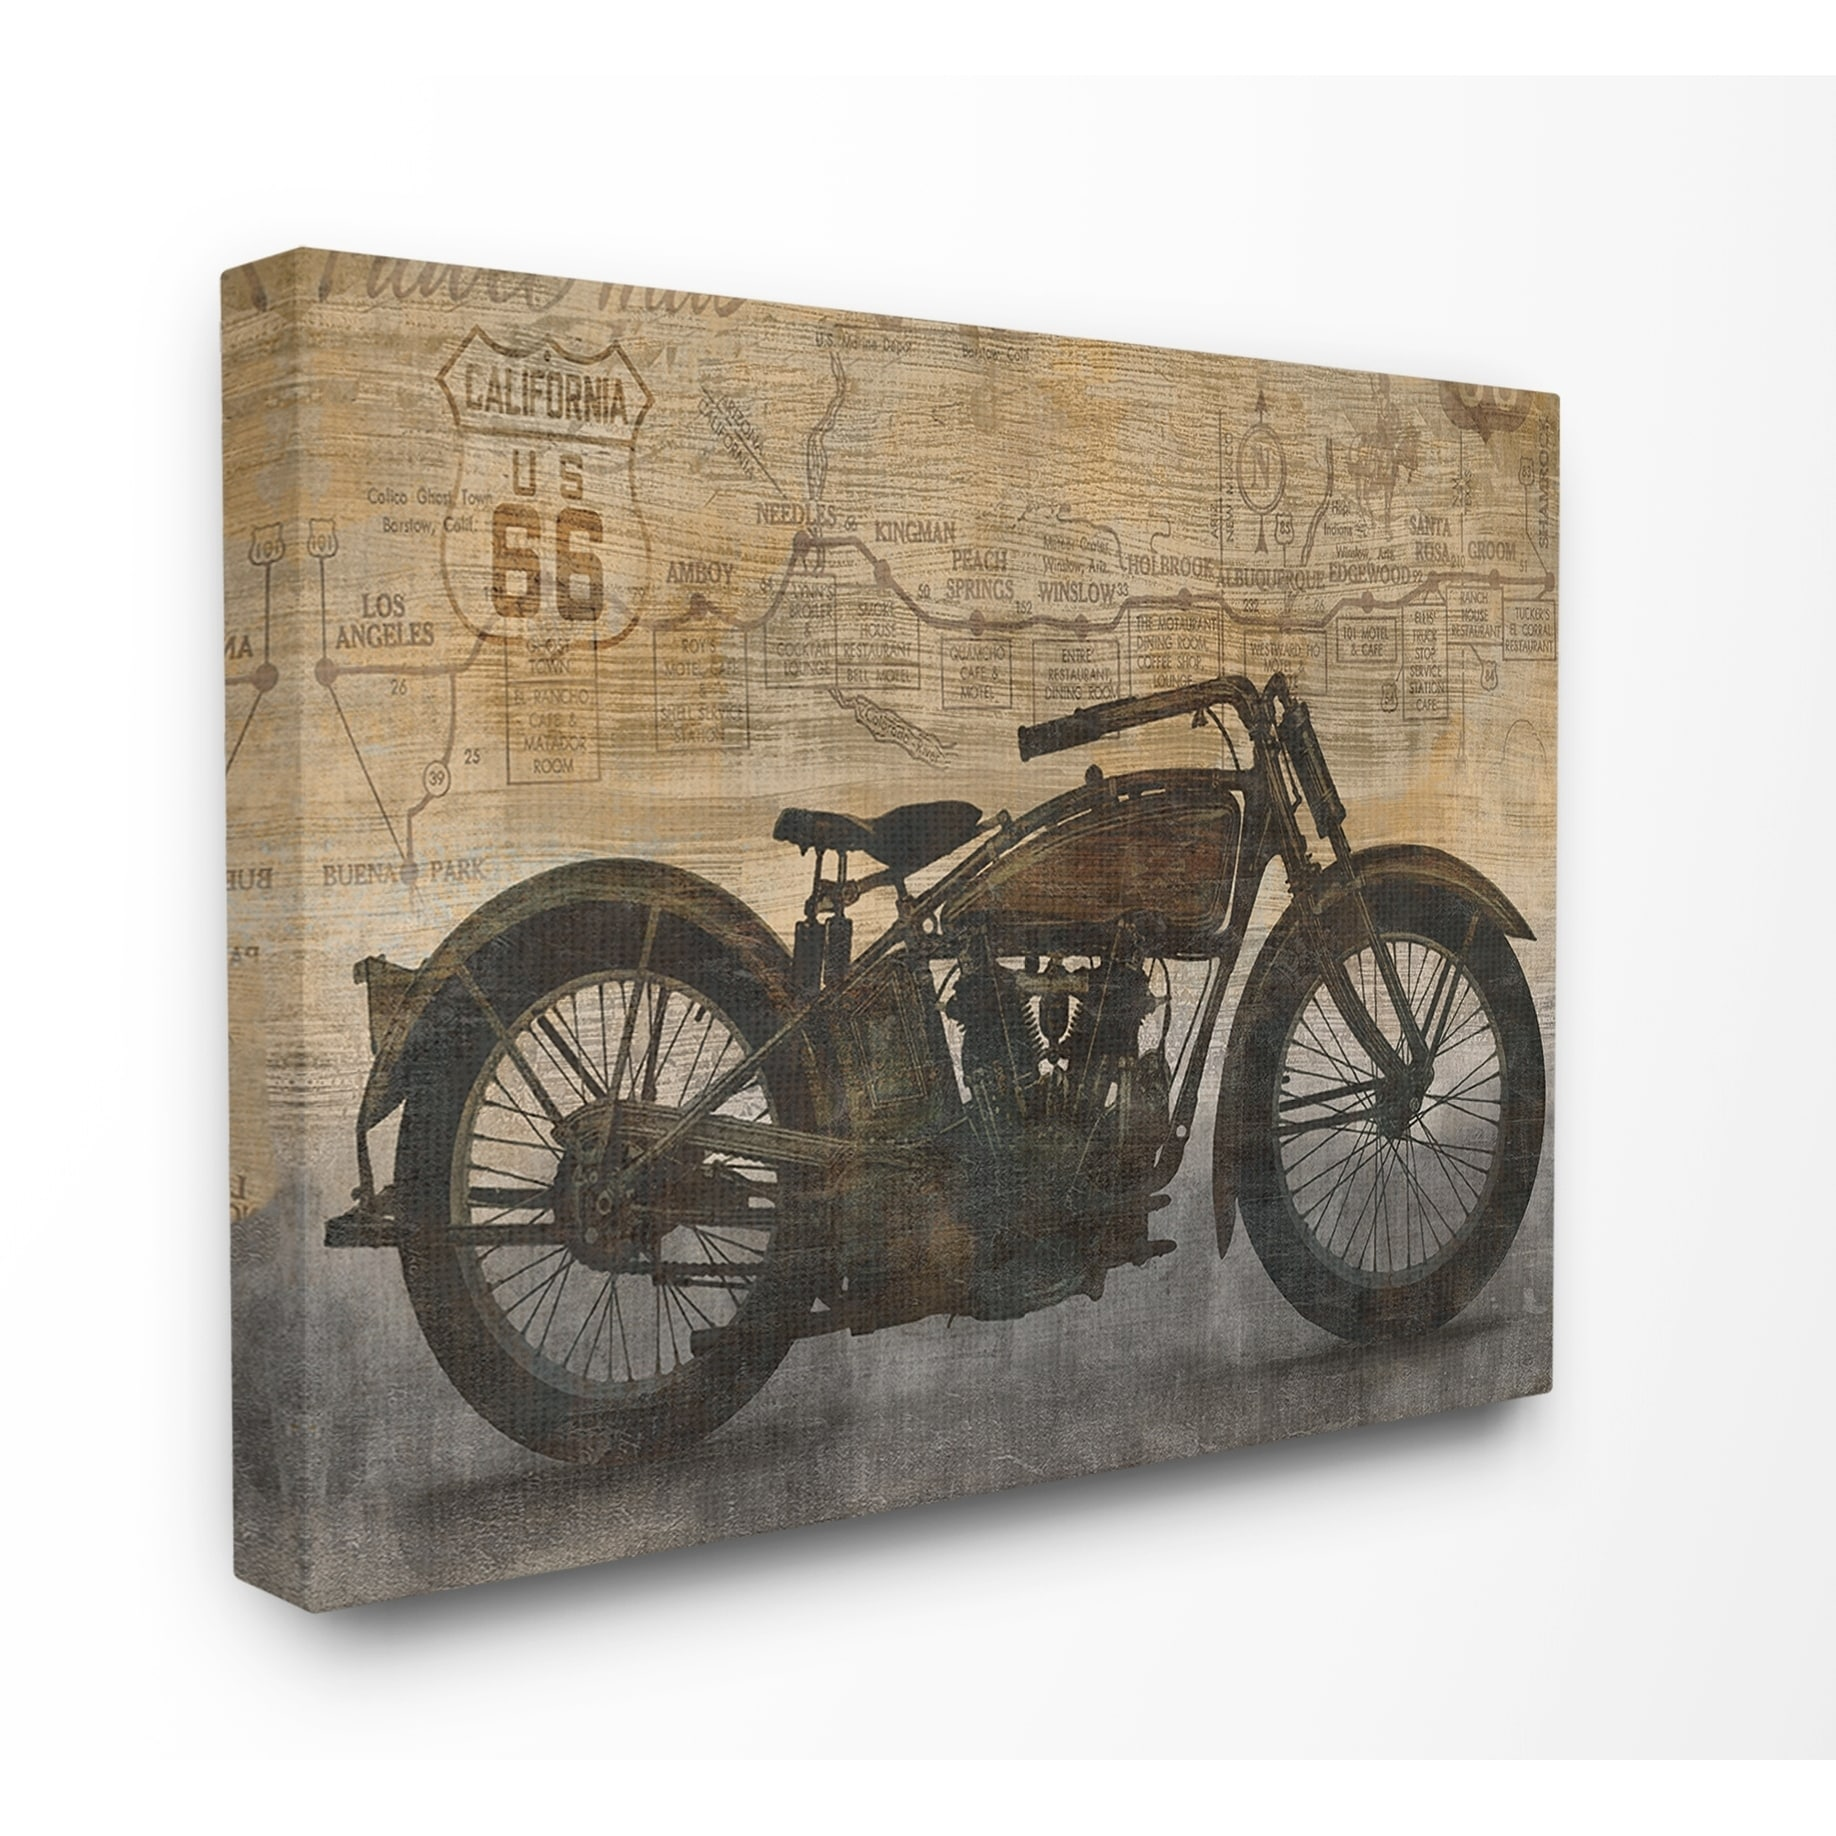 The stupell home décor collection tan and black sepia motorcycle road map canvas wall art 16 x 20 proudly made in usa